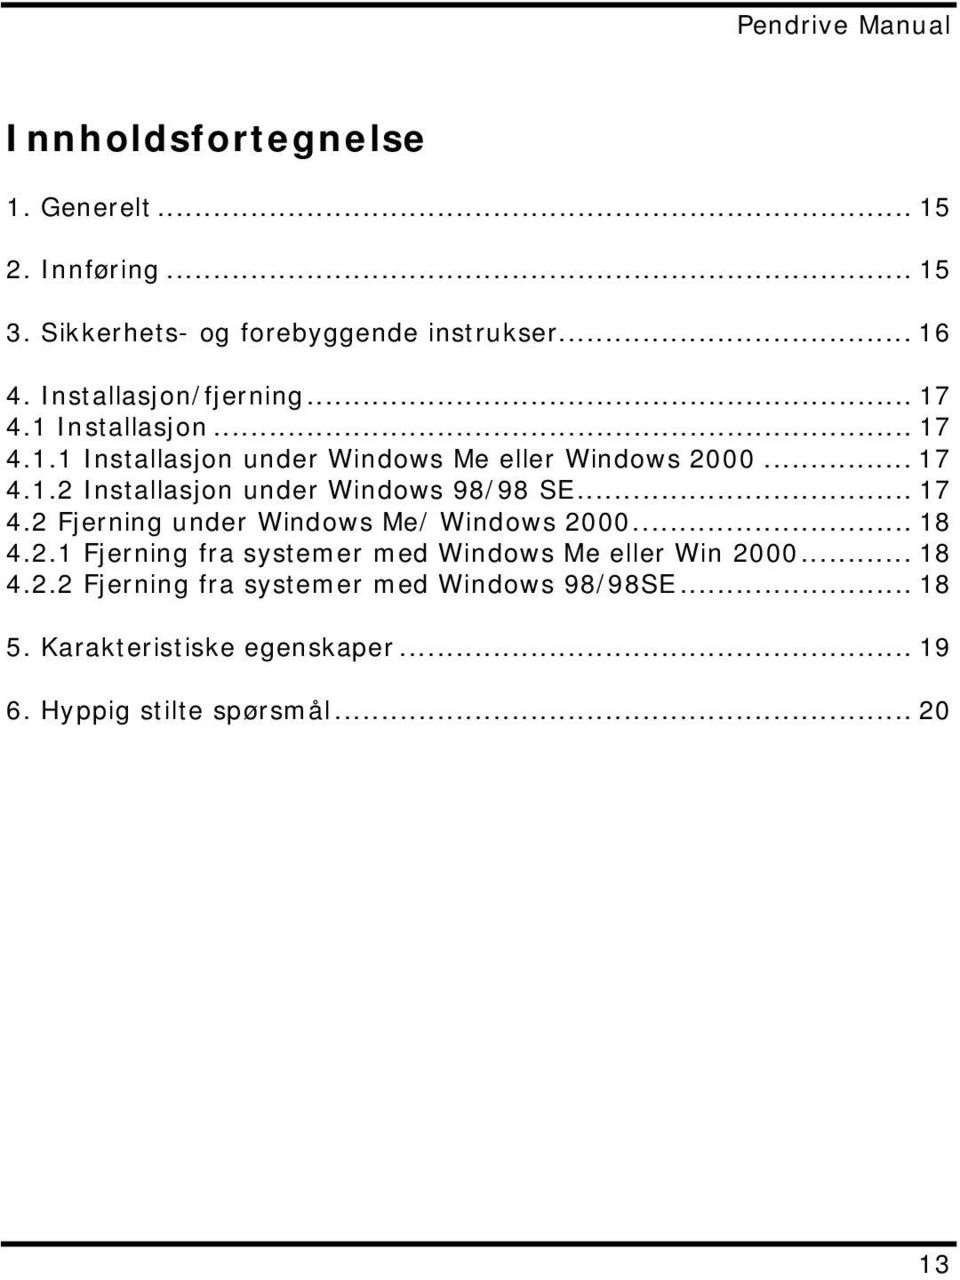 .. 17 4.2 Fjerning under Windows Me/ Windows 2000... 18 4.2.1 Fjerning fra systemer med Windows Me eller Win 2000... 18 4.2.2 Fjerning fra systemer med Windows 98/98SE.